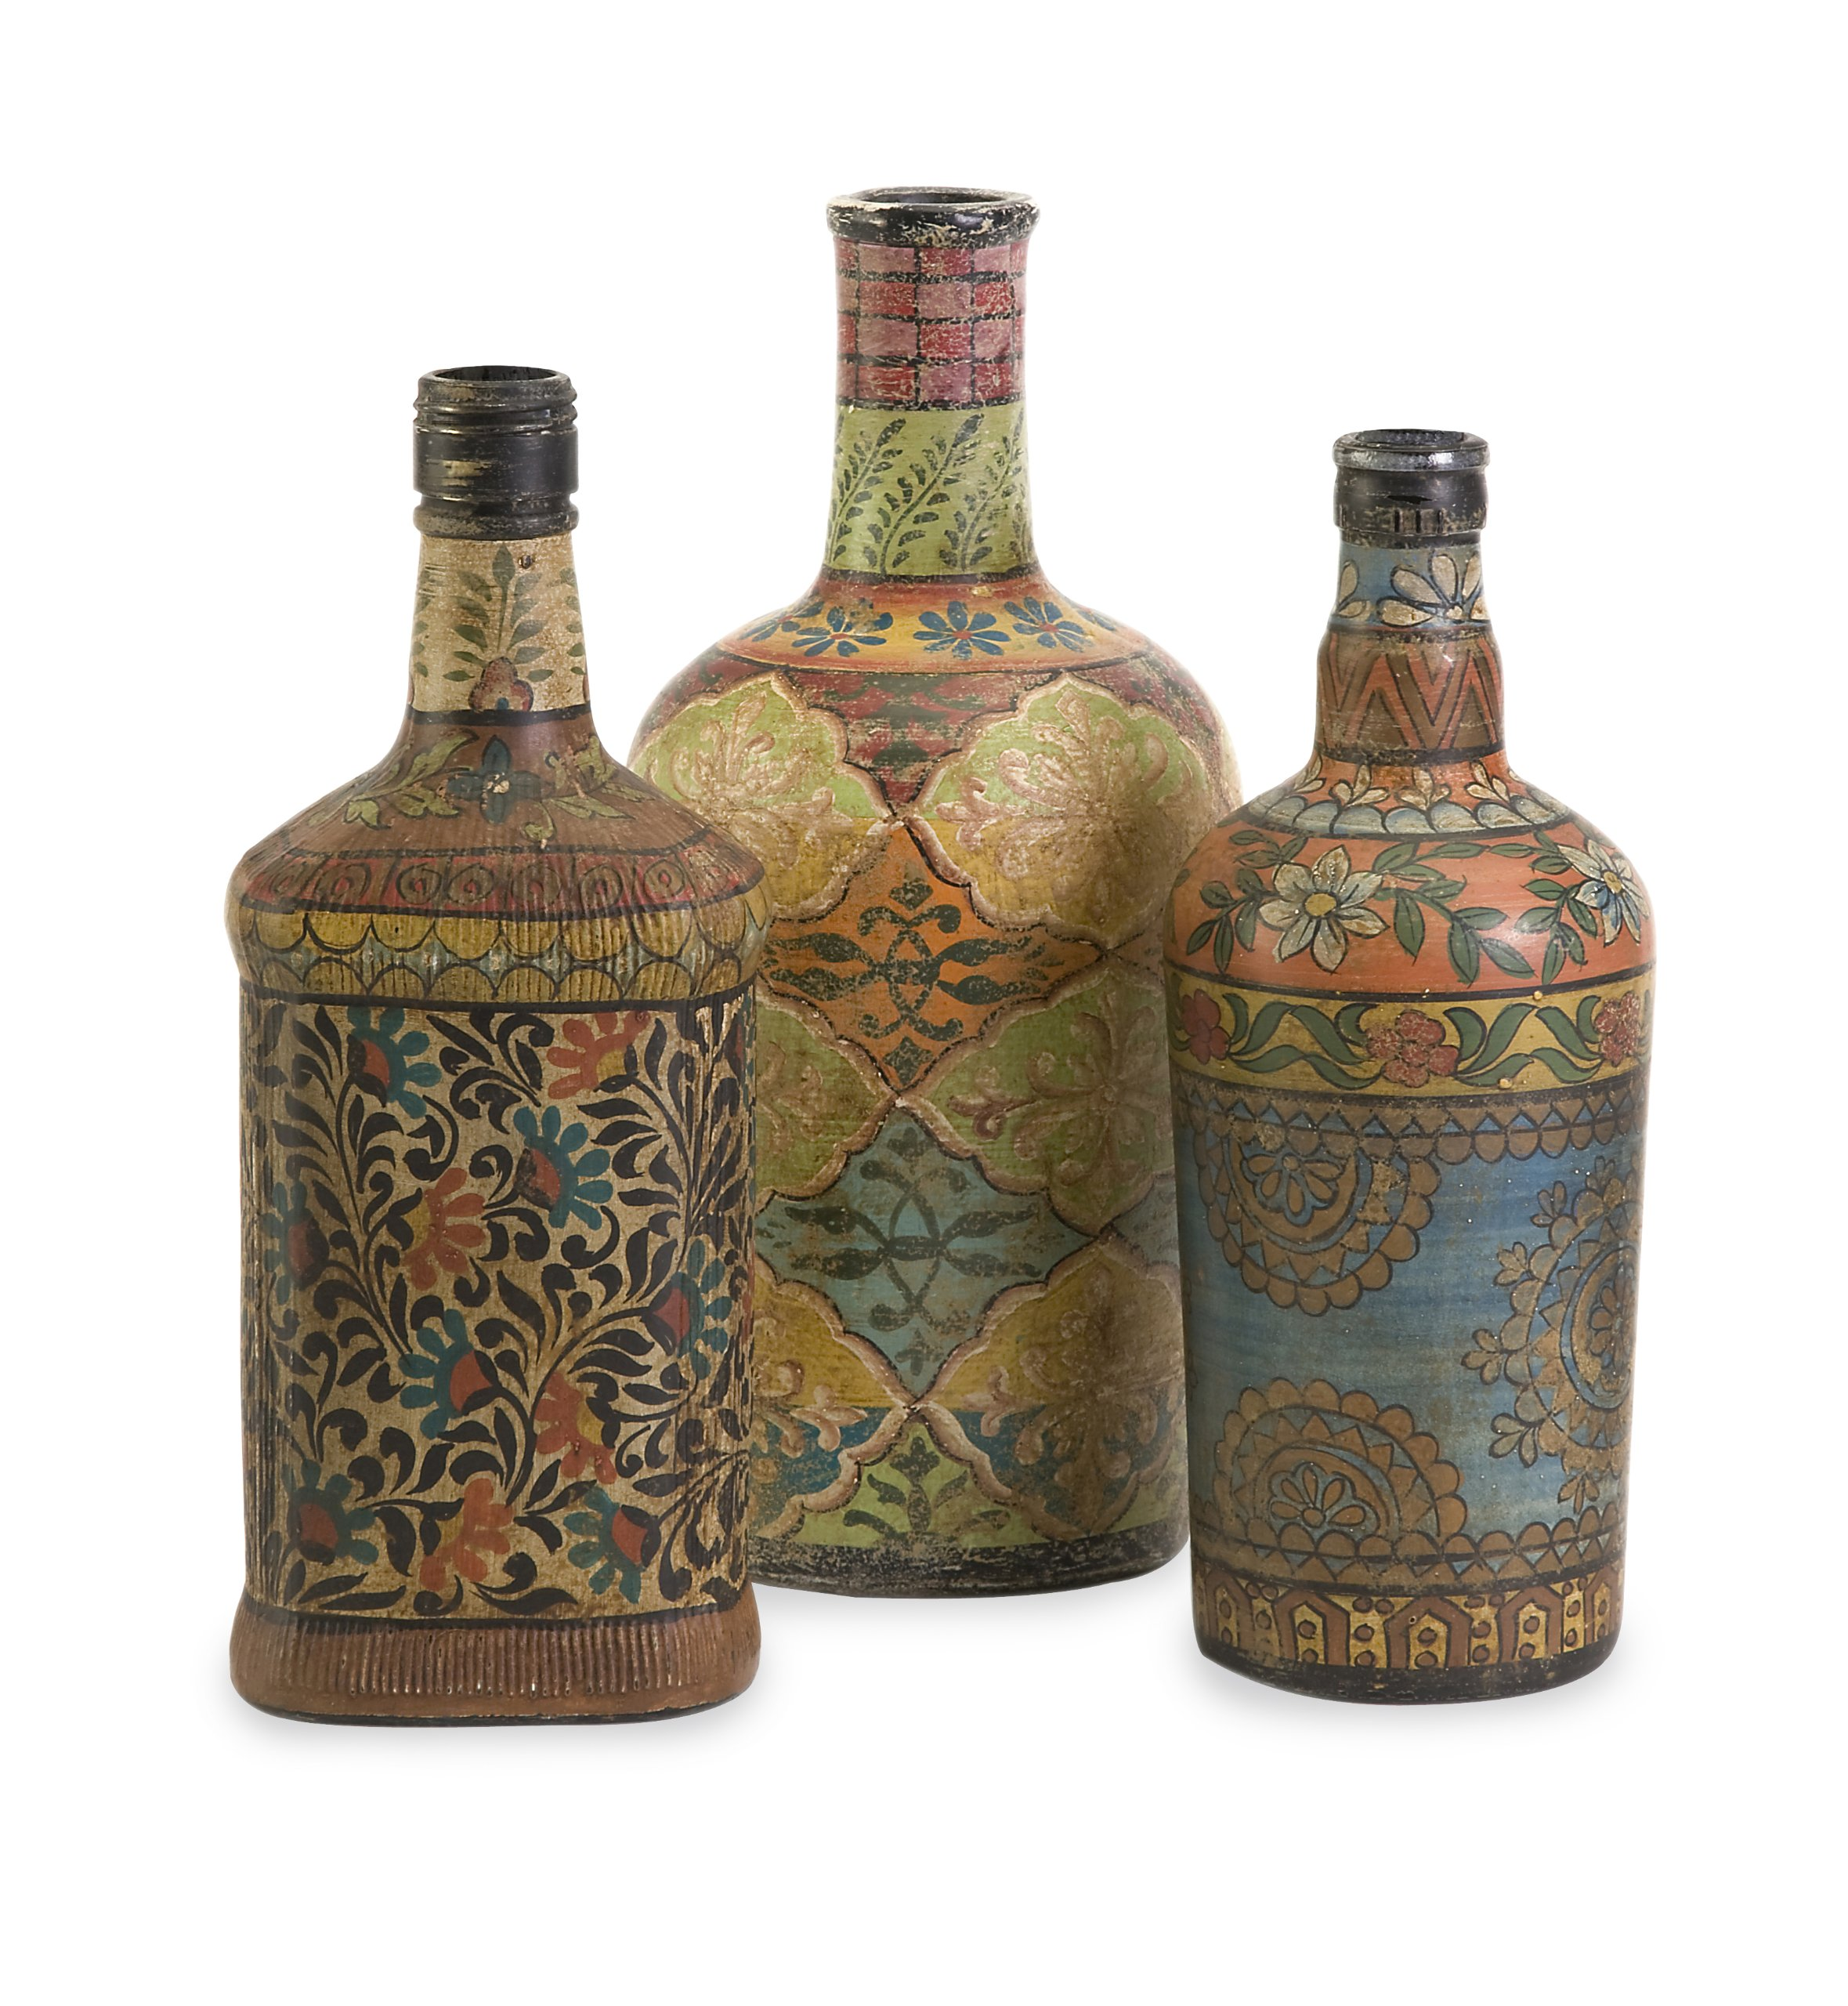 IMAX 73105-3 Circus Bottles, Set of 3 by Imax